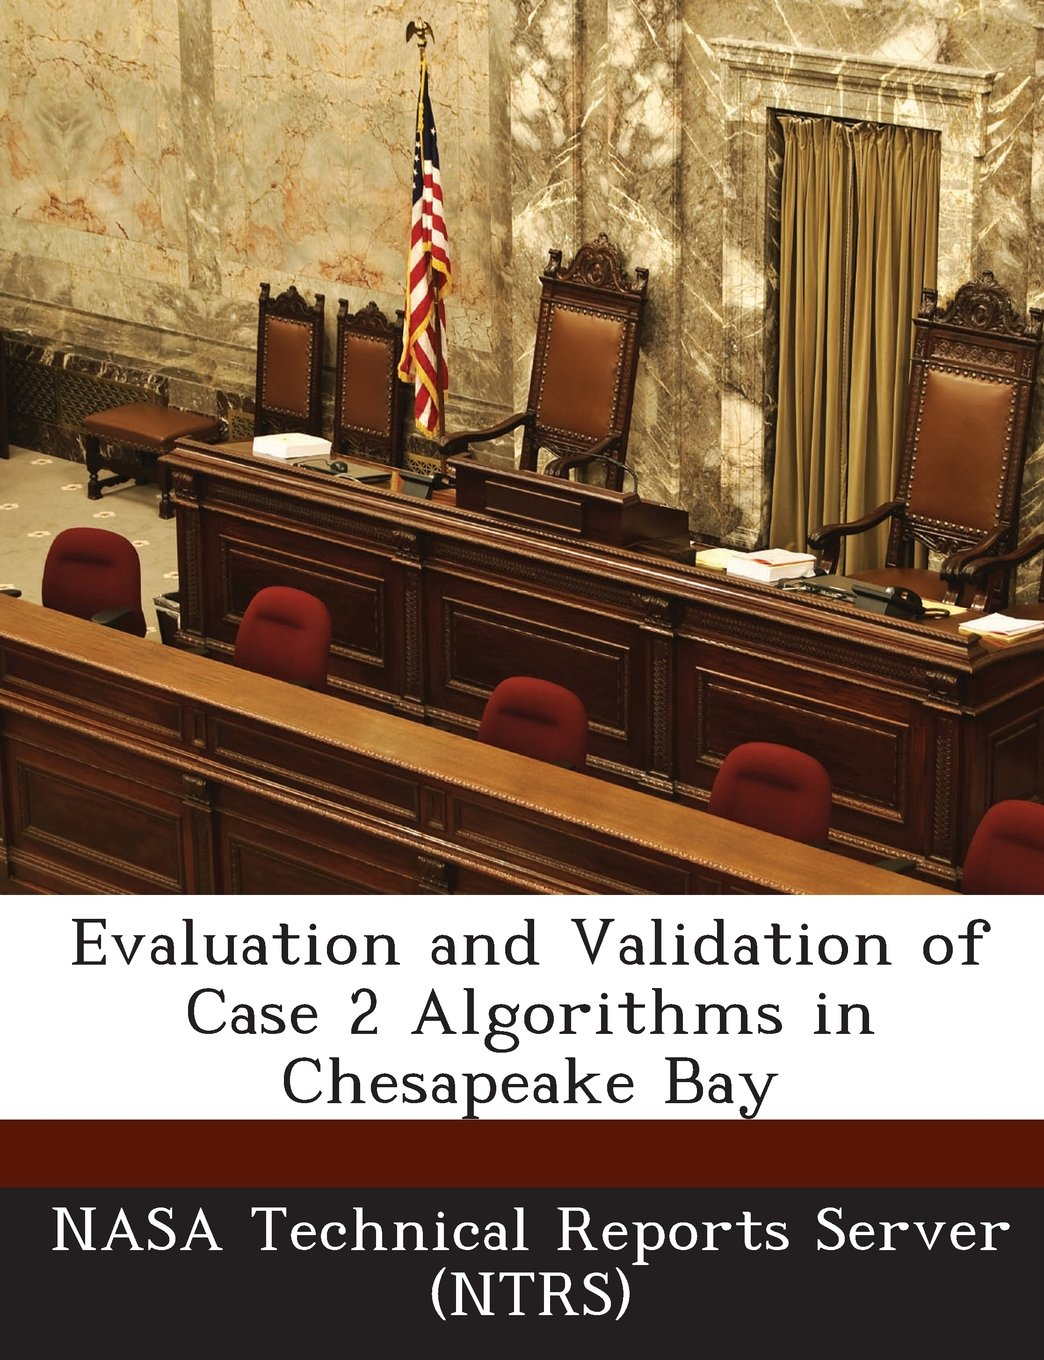 bf1f1e51033 Evaluation and Validation of Case 2 Algorithms in Chesapeake Bay Paperback  – July 31